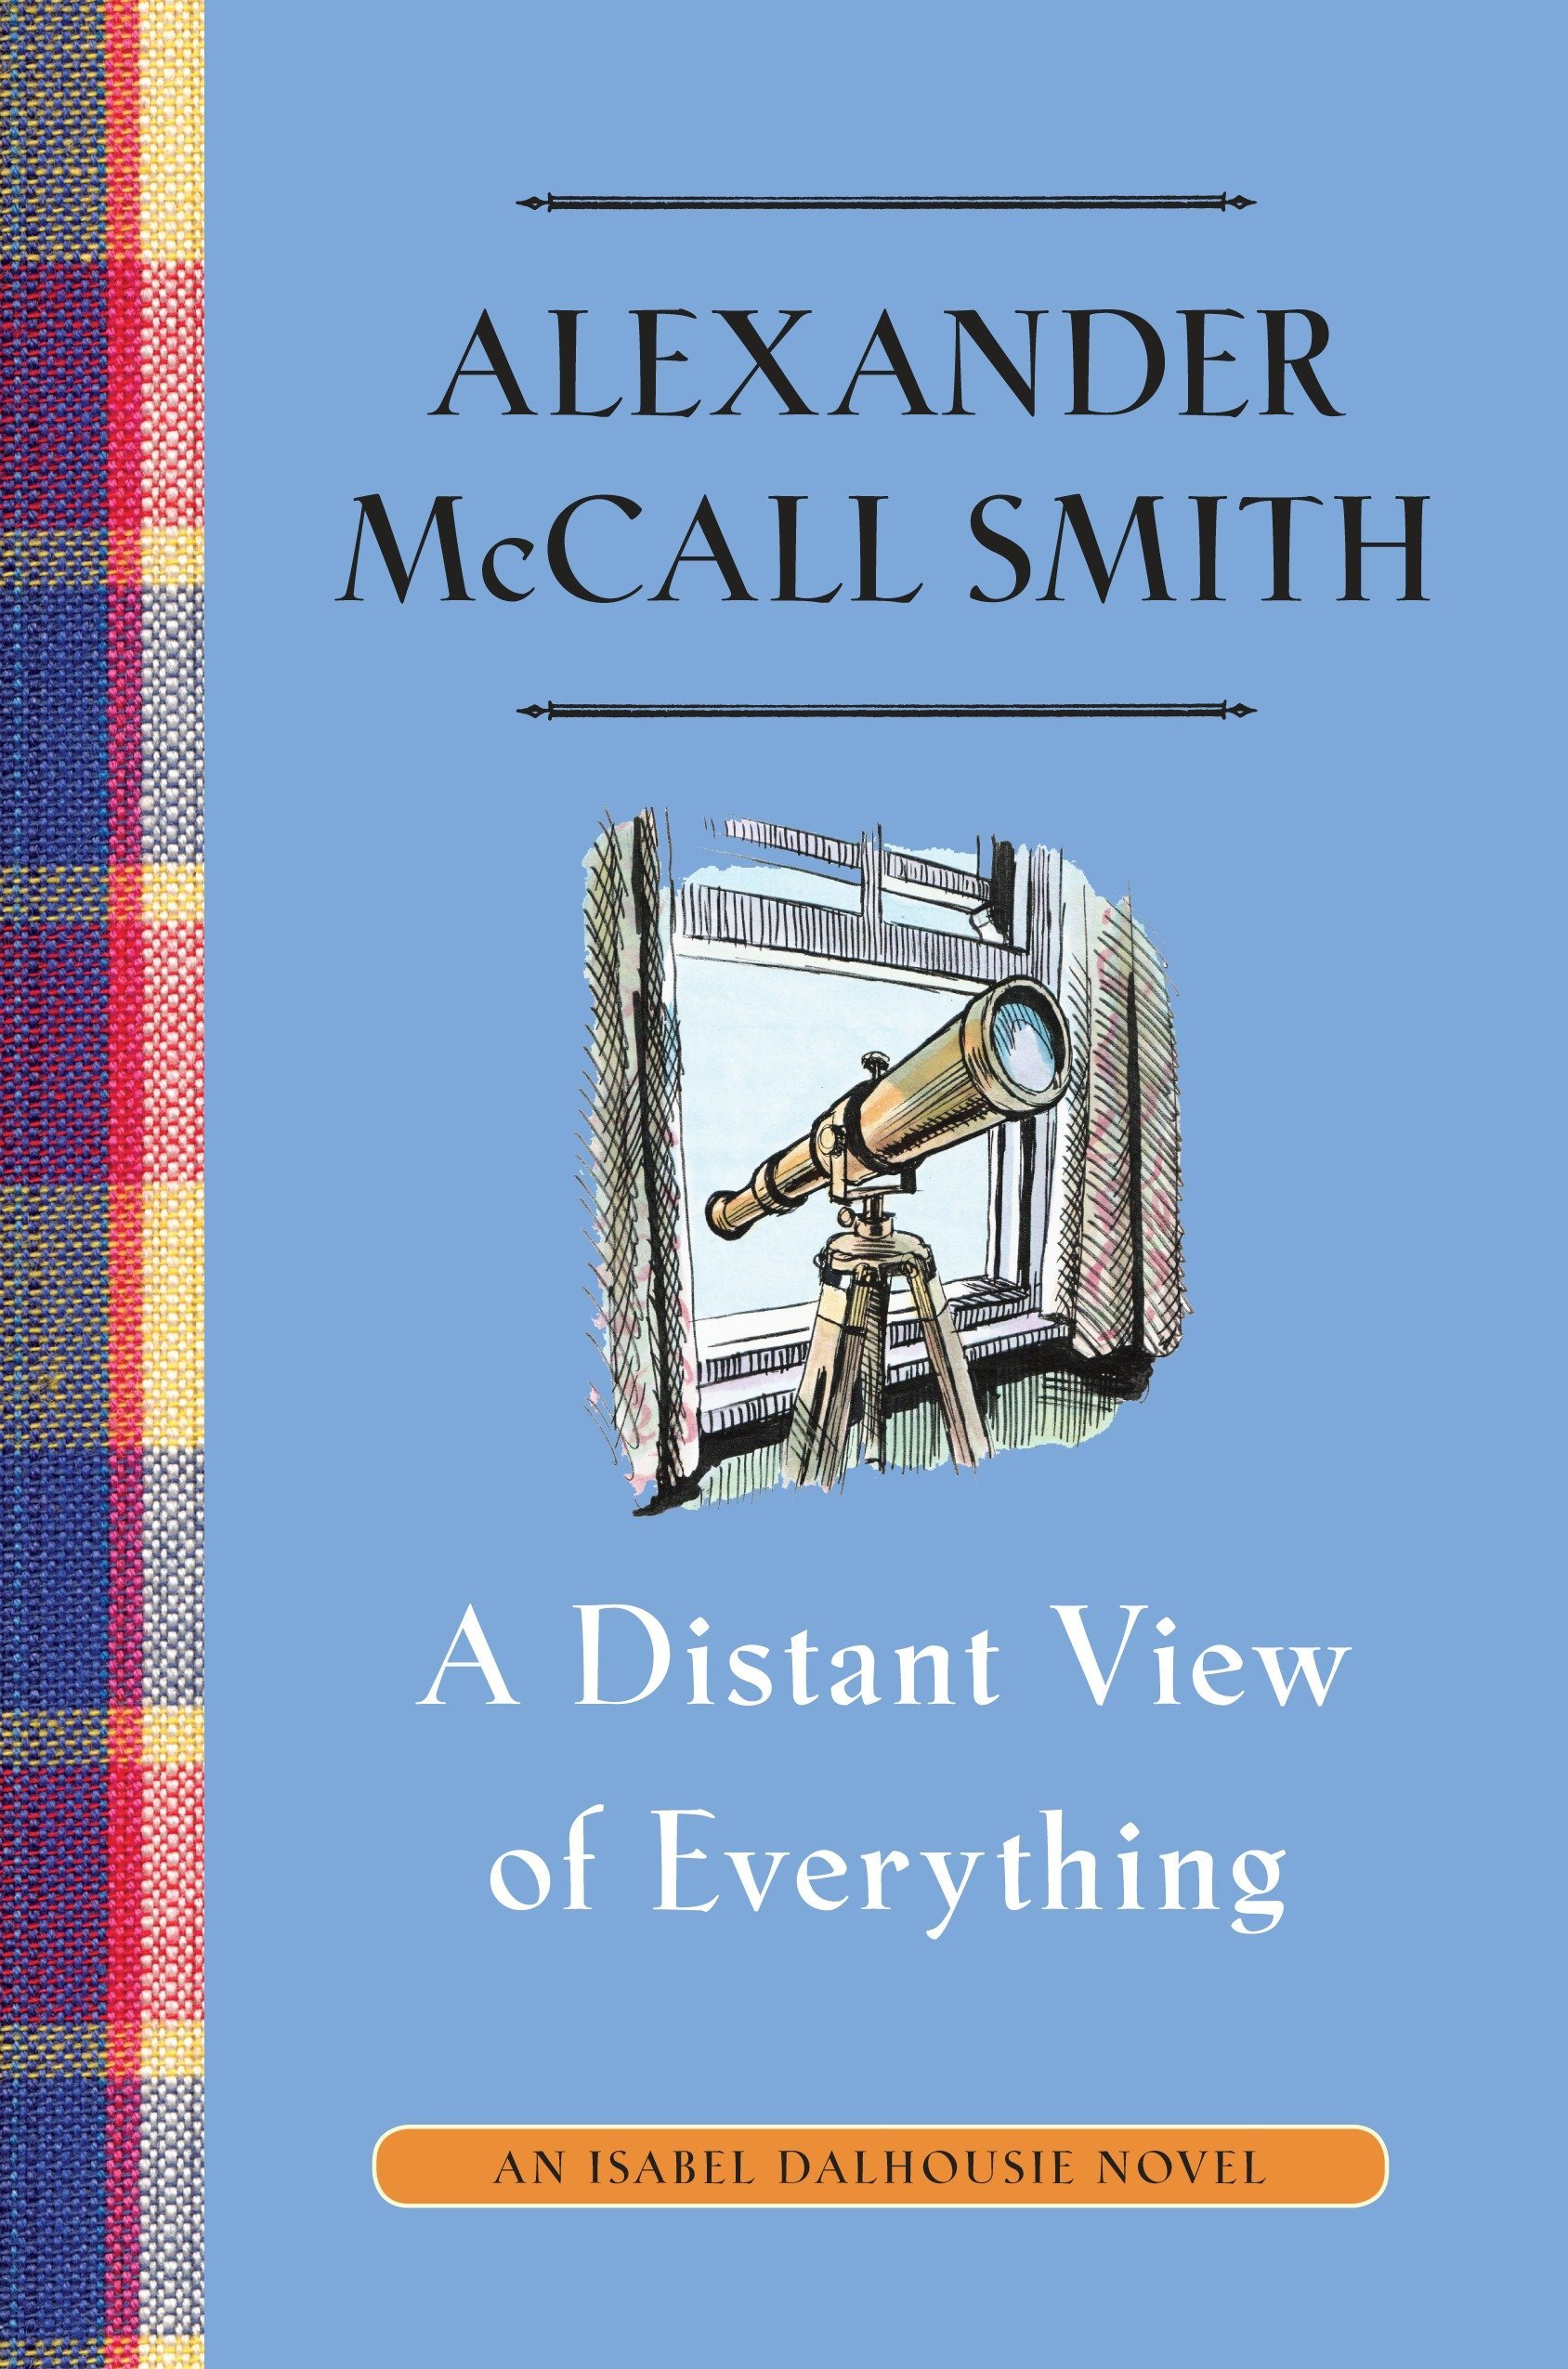 A Distant View of Everything: An Isabel Dalhousie Novel (11) (Isabel Dalhousie Series) PDF